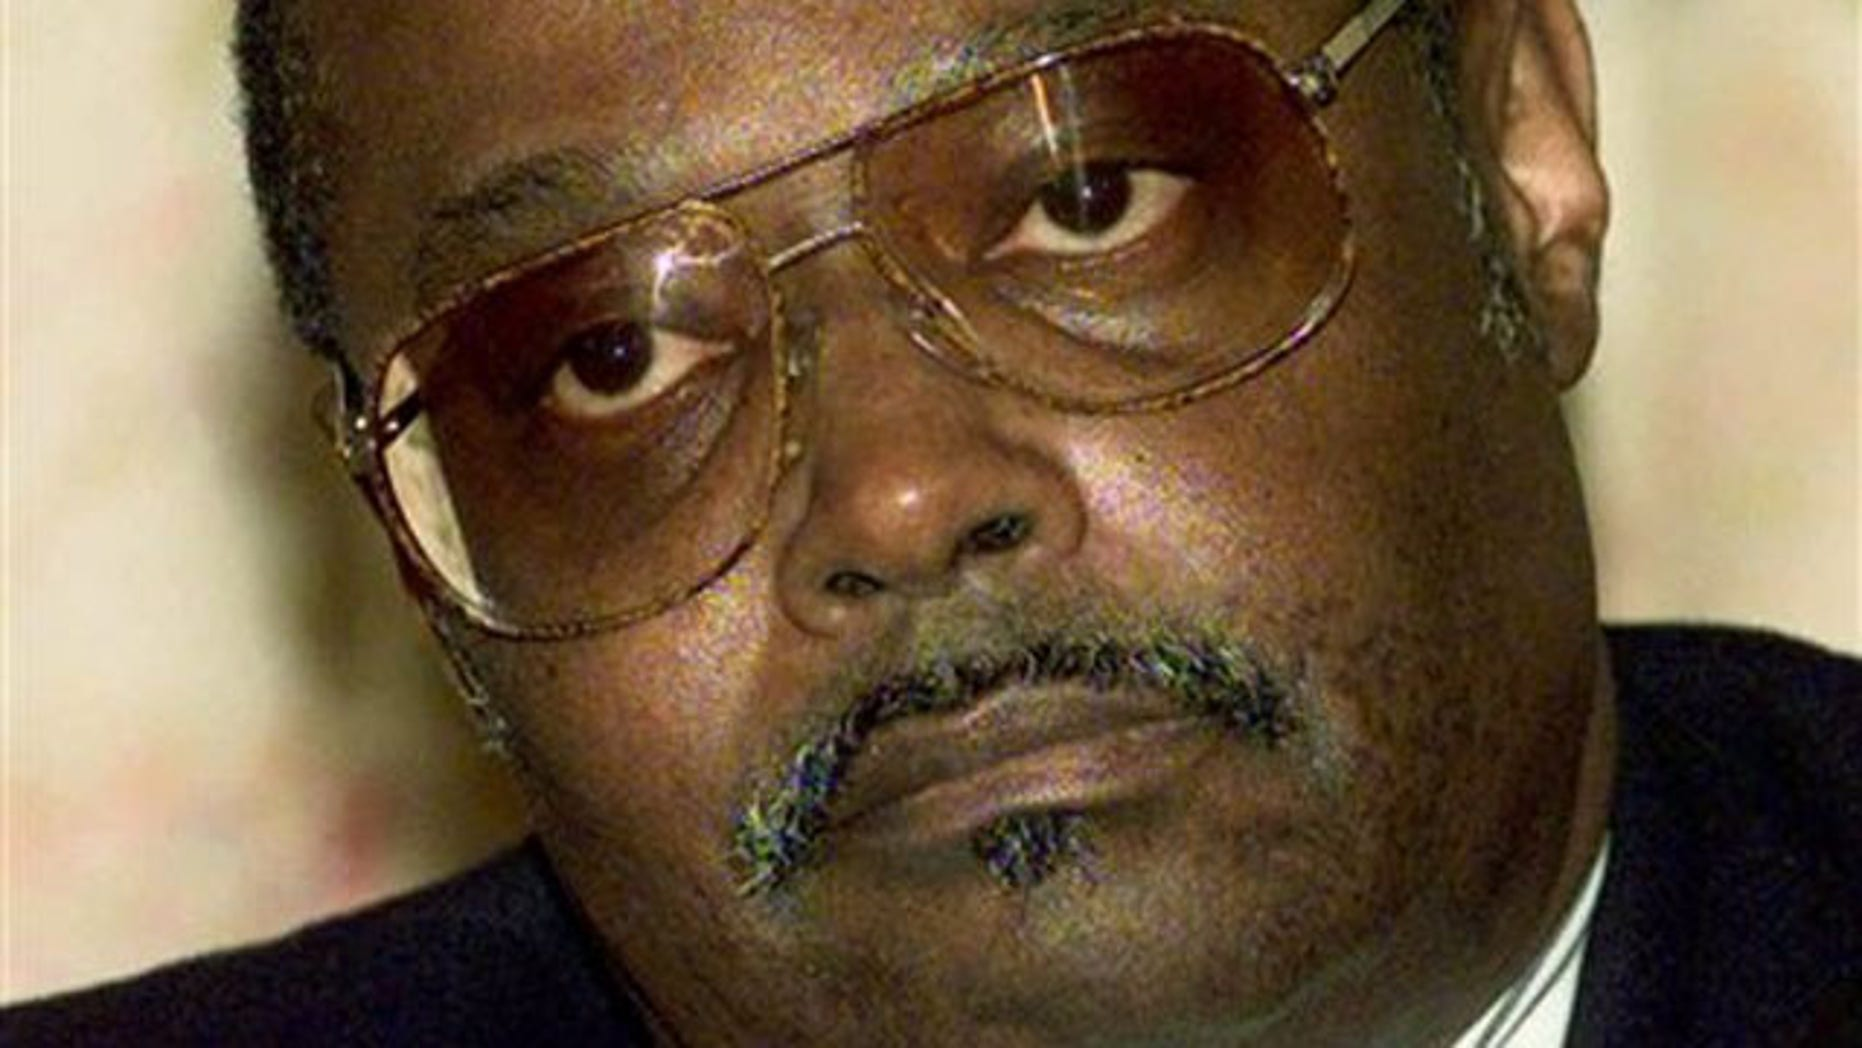 In a Sept. 24, 1997 file photo, Jefferson Thomas, one of the nine students that integrated Central High School in 1957 in Little Rock, Ark. listens during a news conference in Little Rock, Ark. (AP).